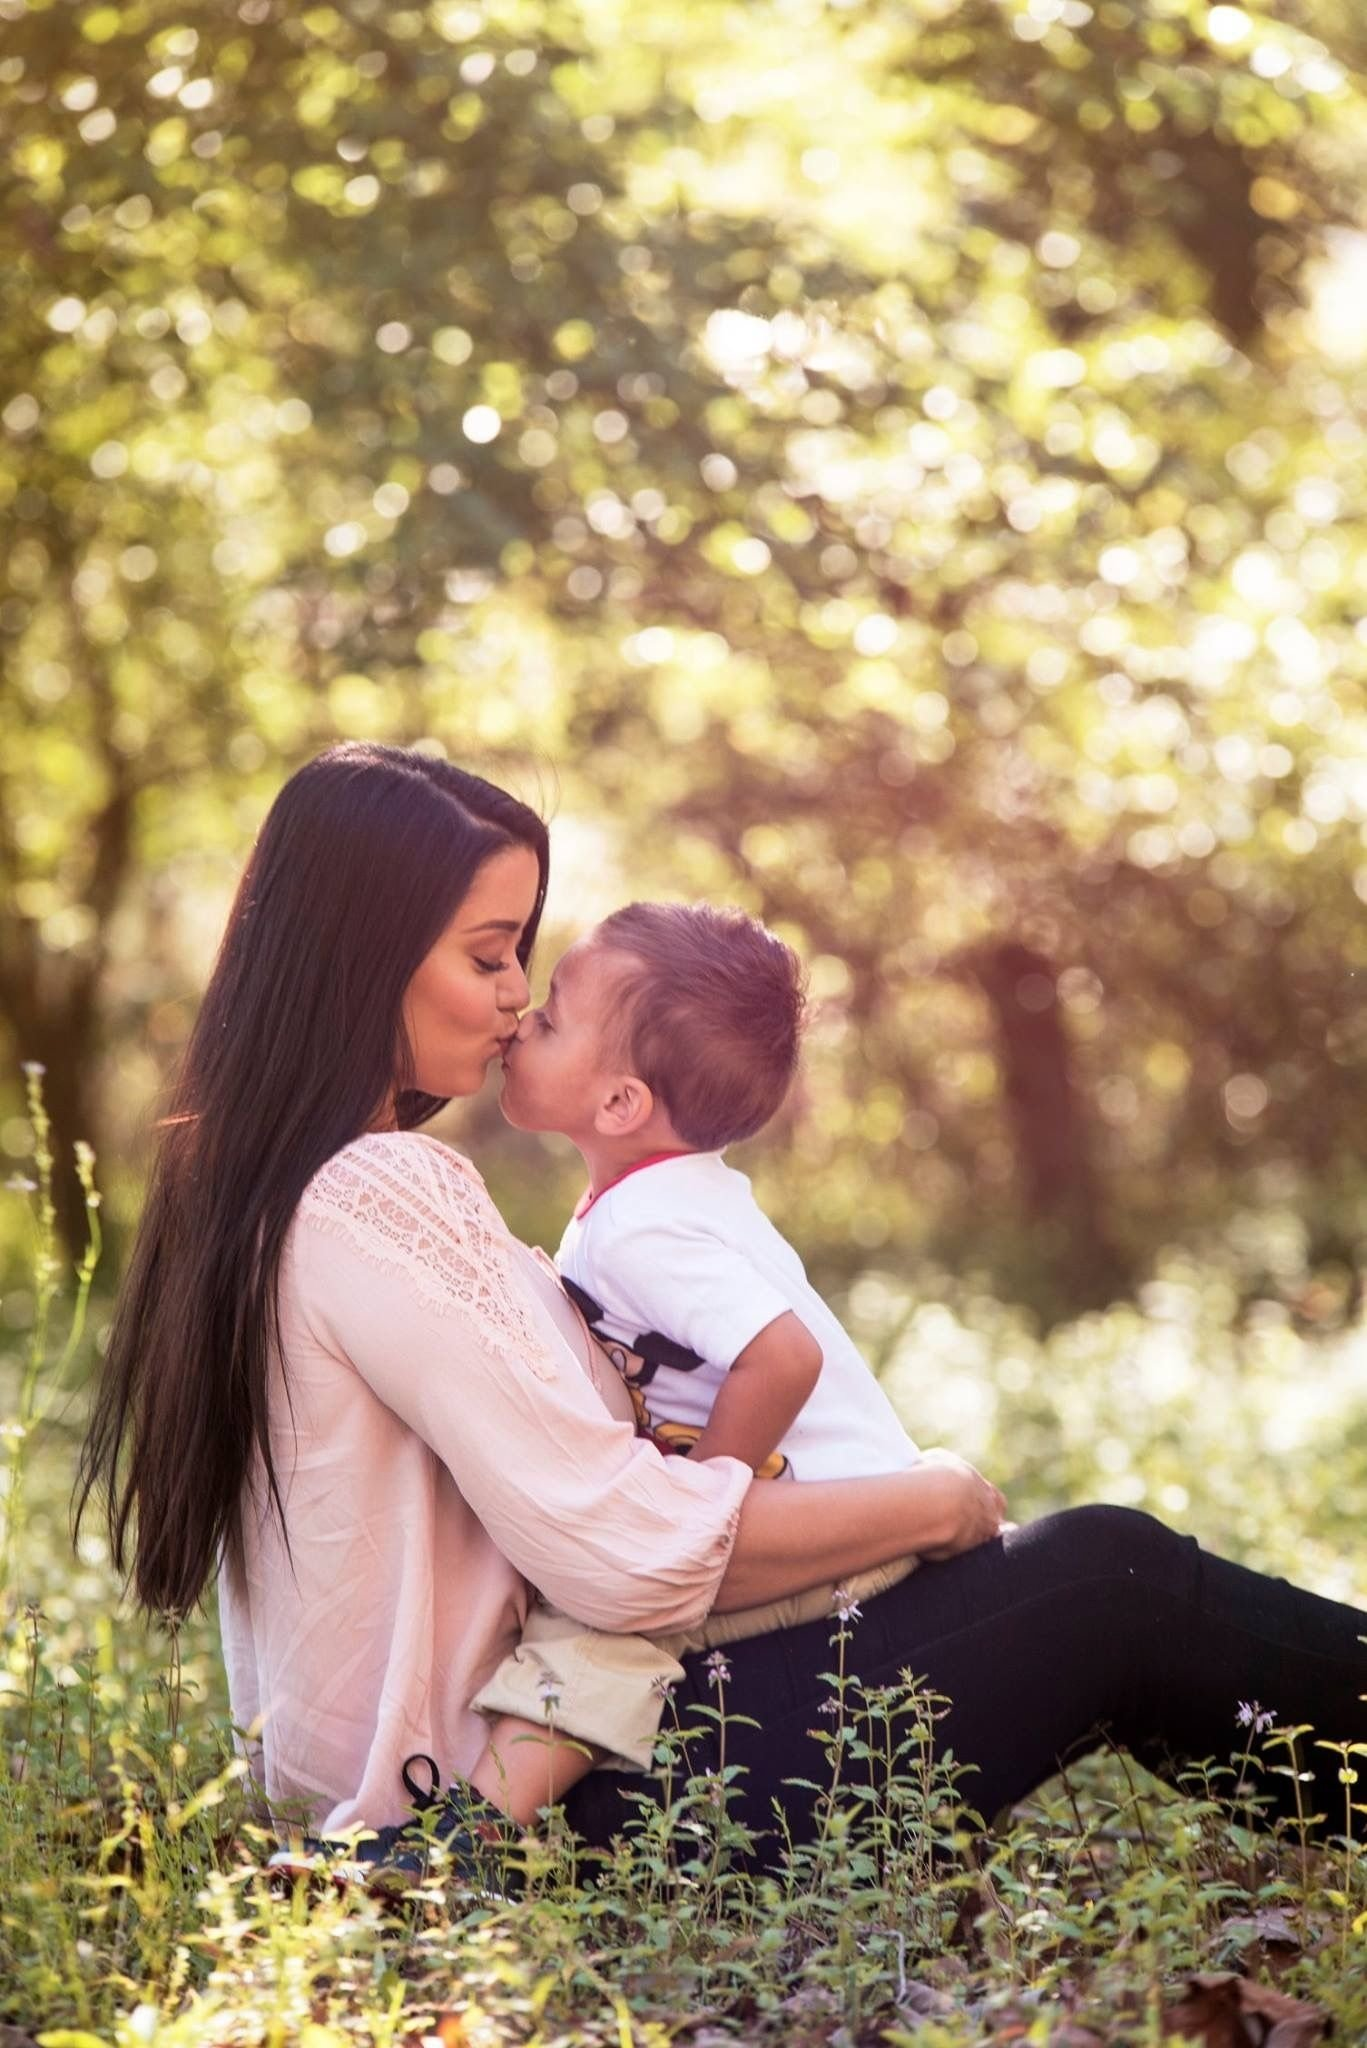 10 Gorgeous Mother And Son Photography Ideas mother and son photos second birthday pictures first birthday 2 2021